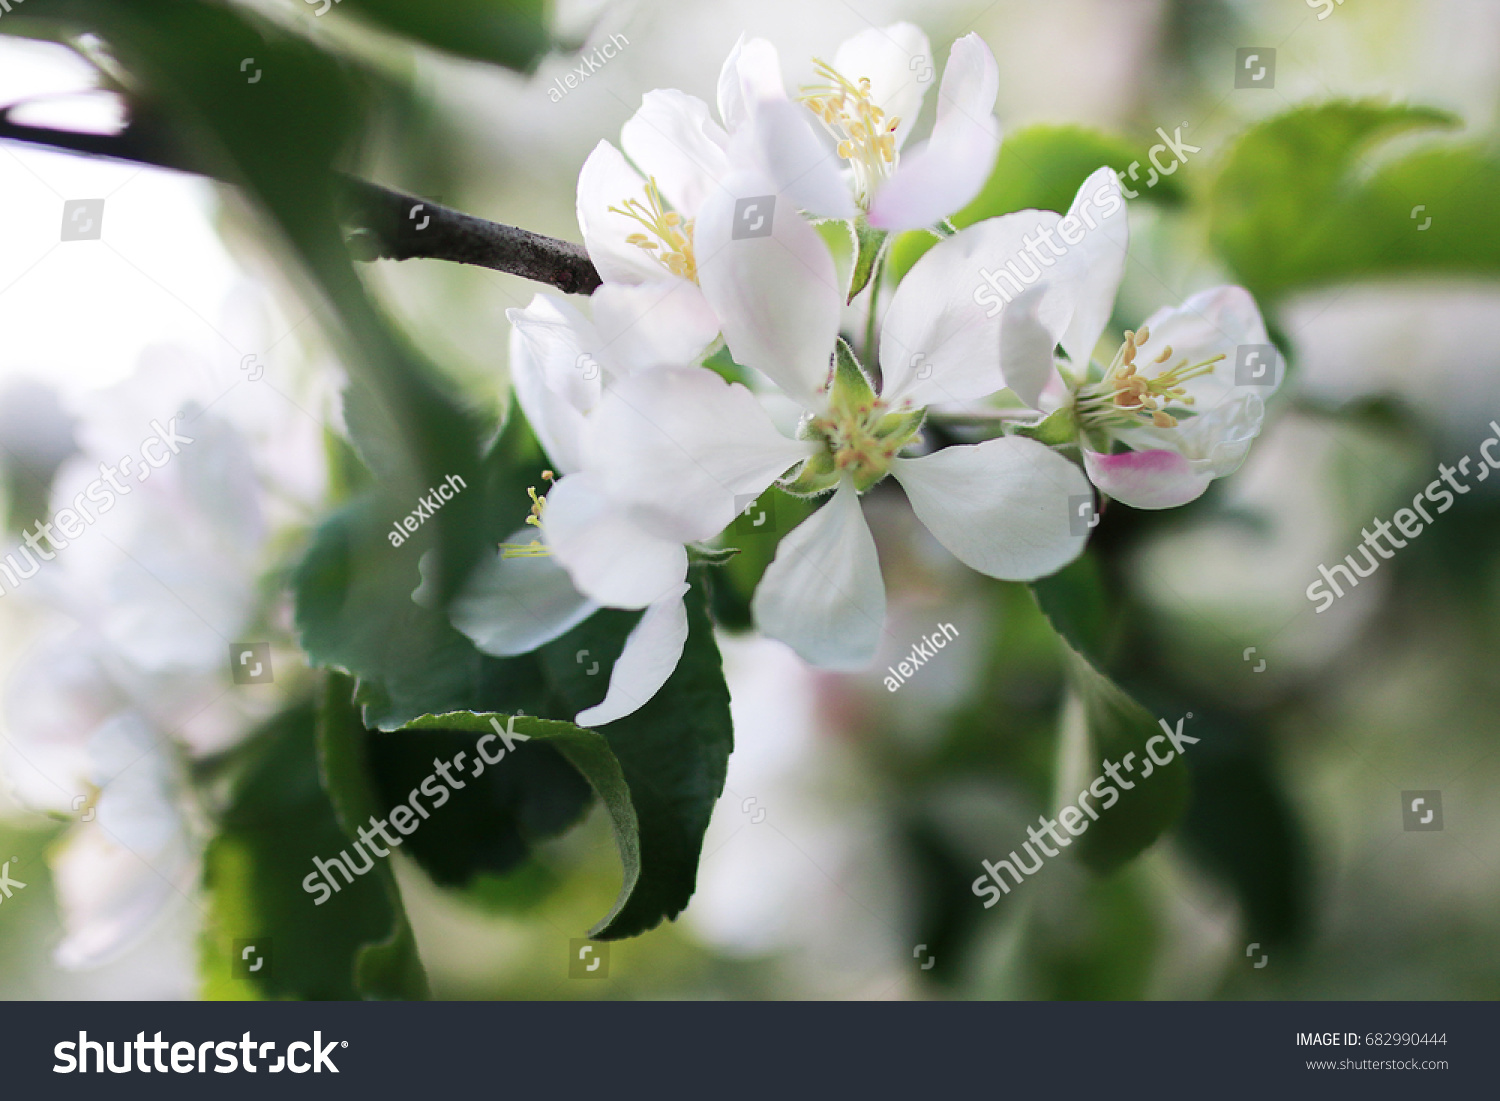 Flowering Apple Tree With Bright White Flowers In Early Spring Ez